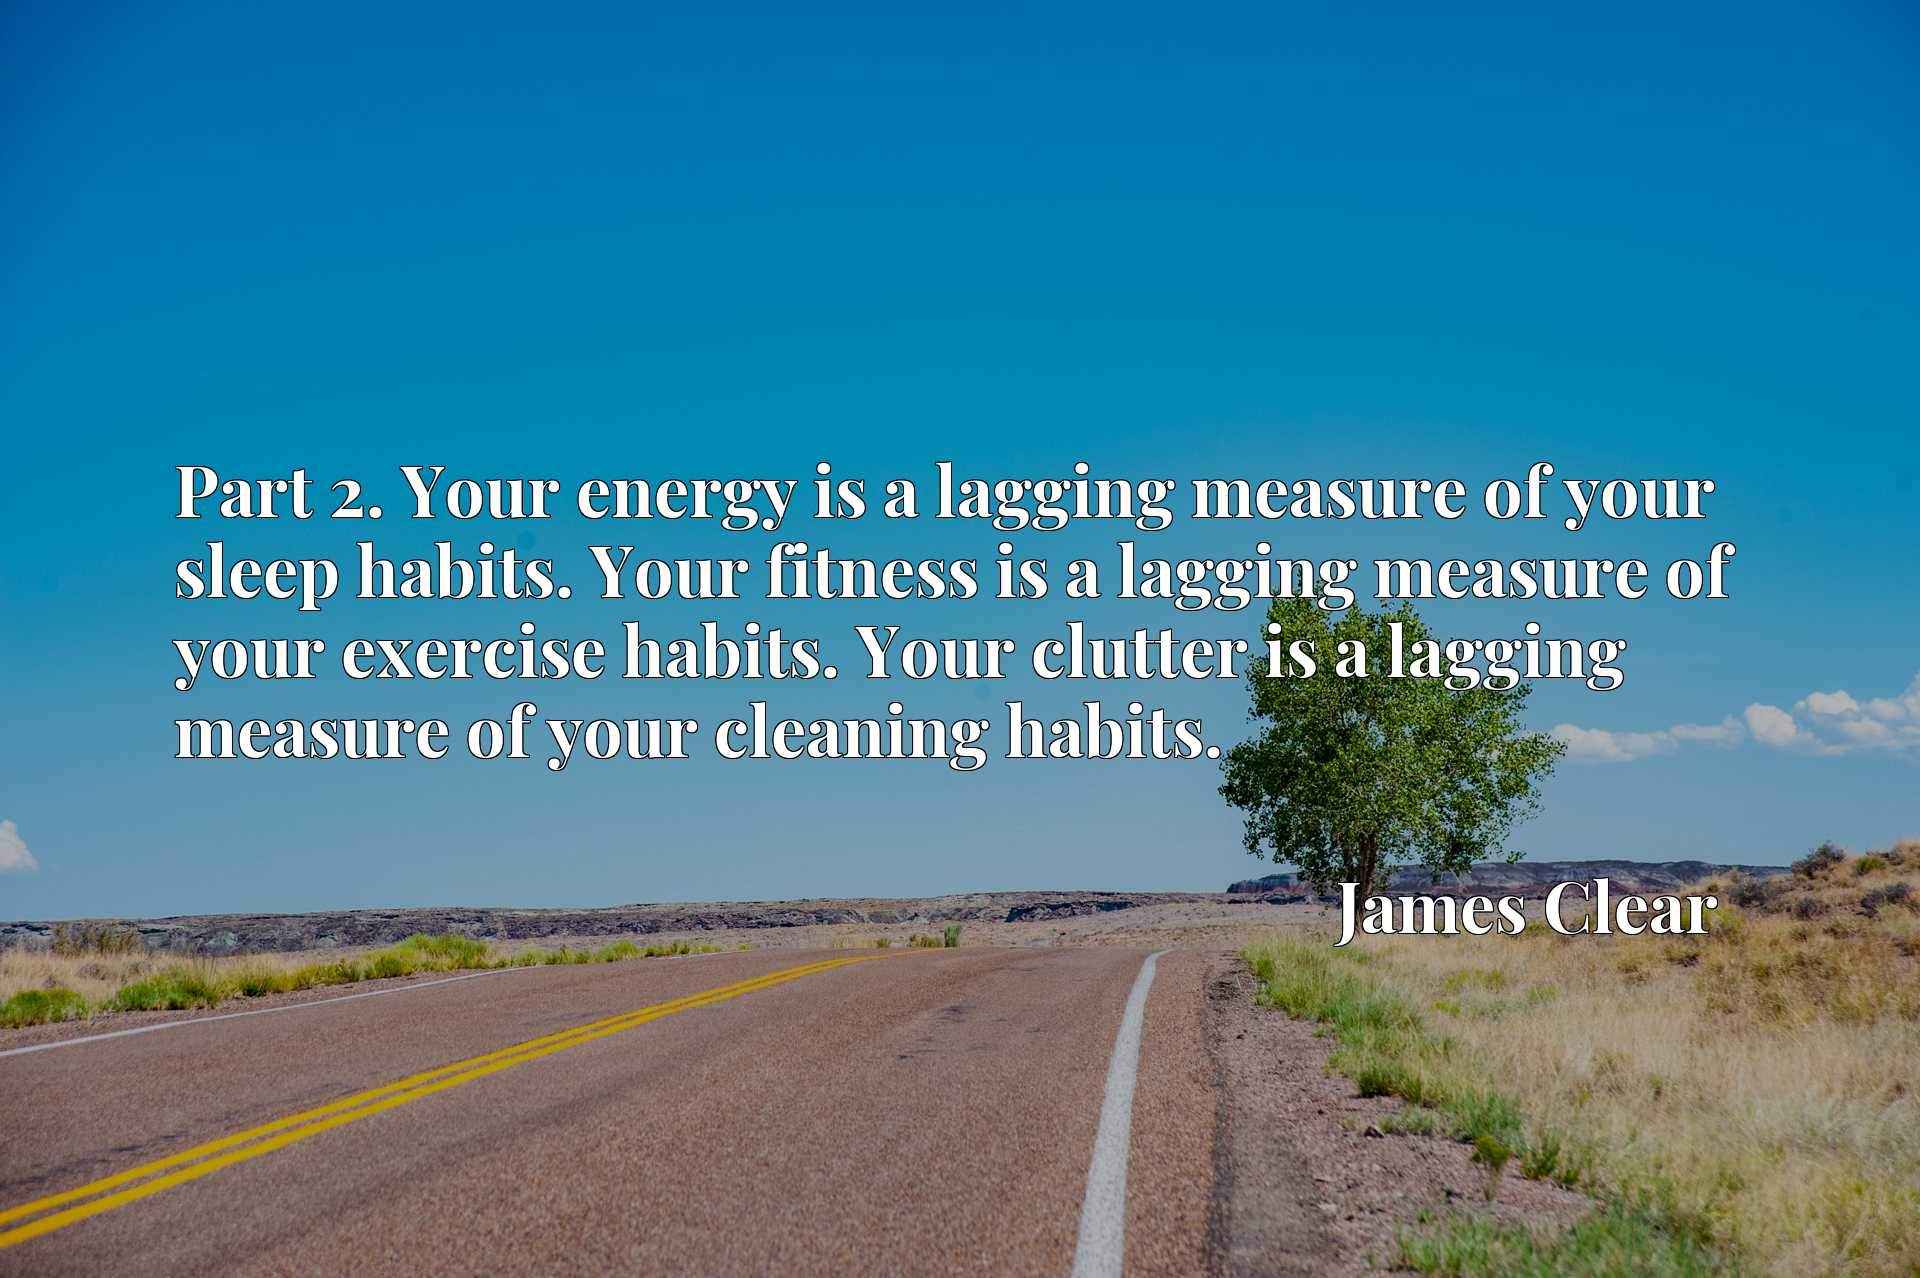 Part 2. Your energy is a lagging measure of your sleep habits. Your fitness is a lagging measure of your exercise habits. Your clutter is a lagging measure of your cleaning habits.